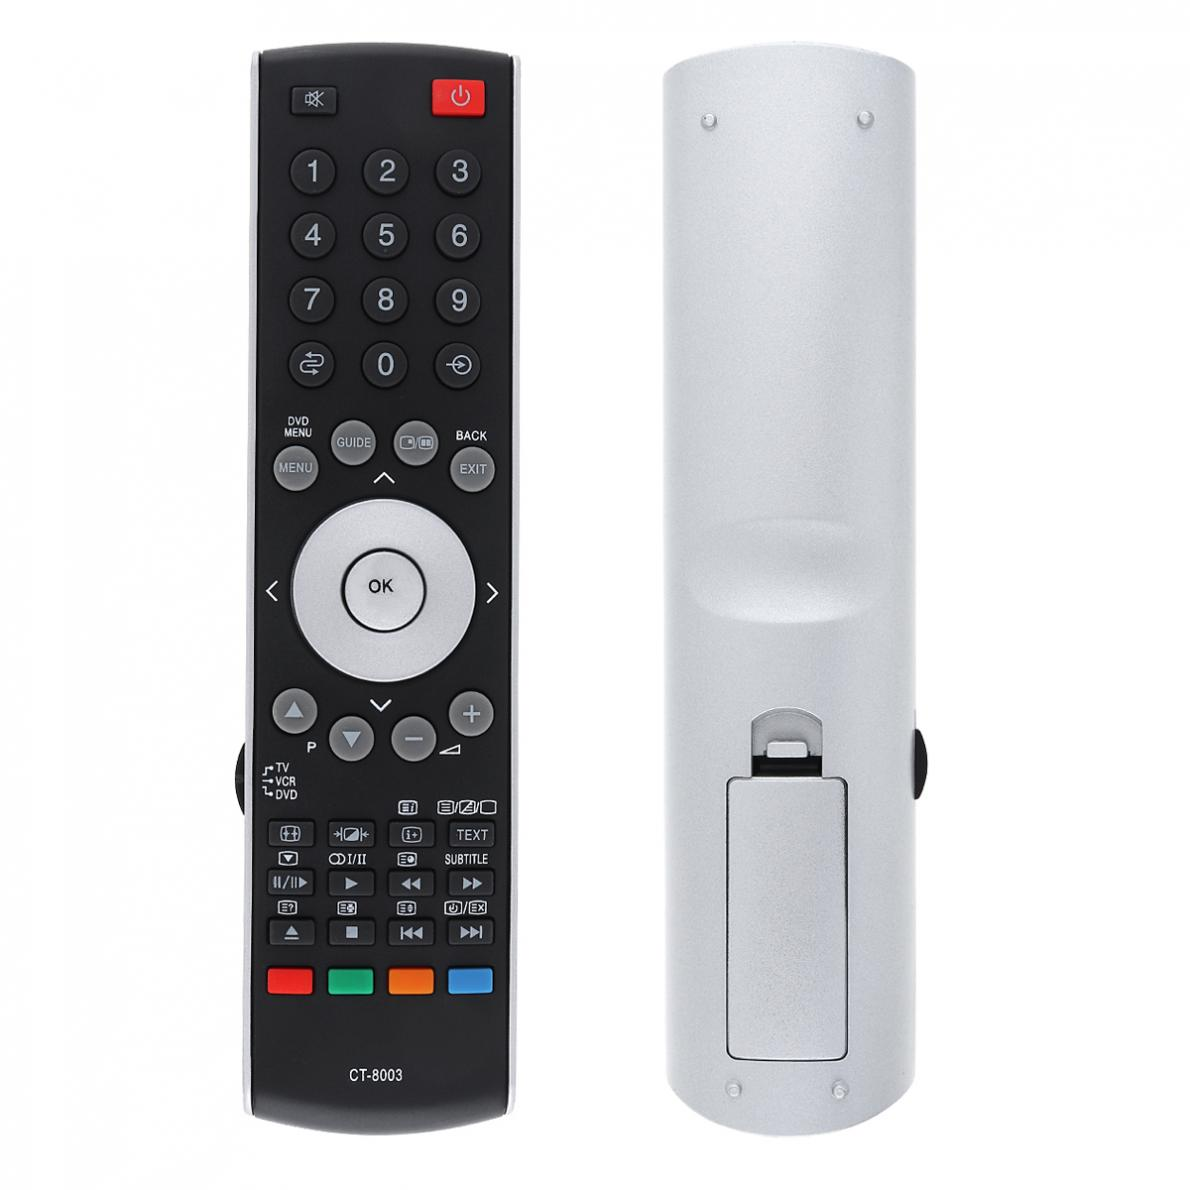 Replacement 433MHz IR CT-8003 Advanced TV Remote Control with Long Control Distance for CT-90314 - 37XV500A 42XV500A  46XV500A